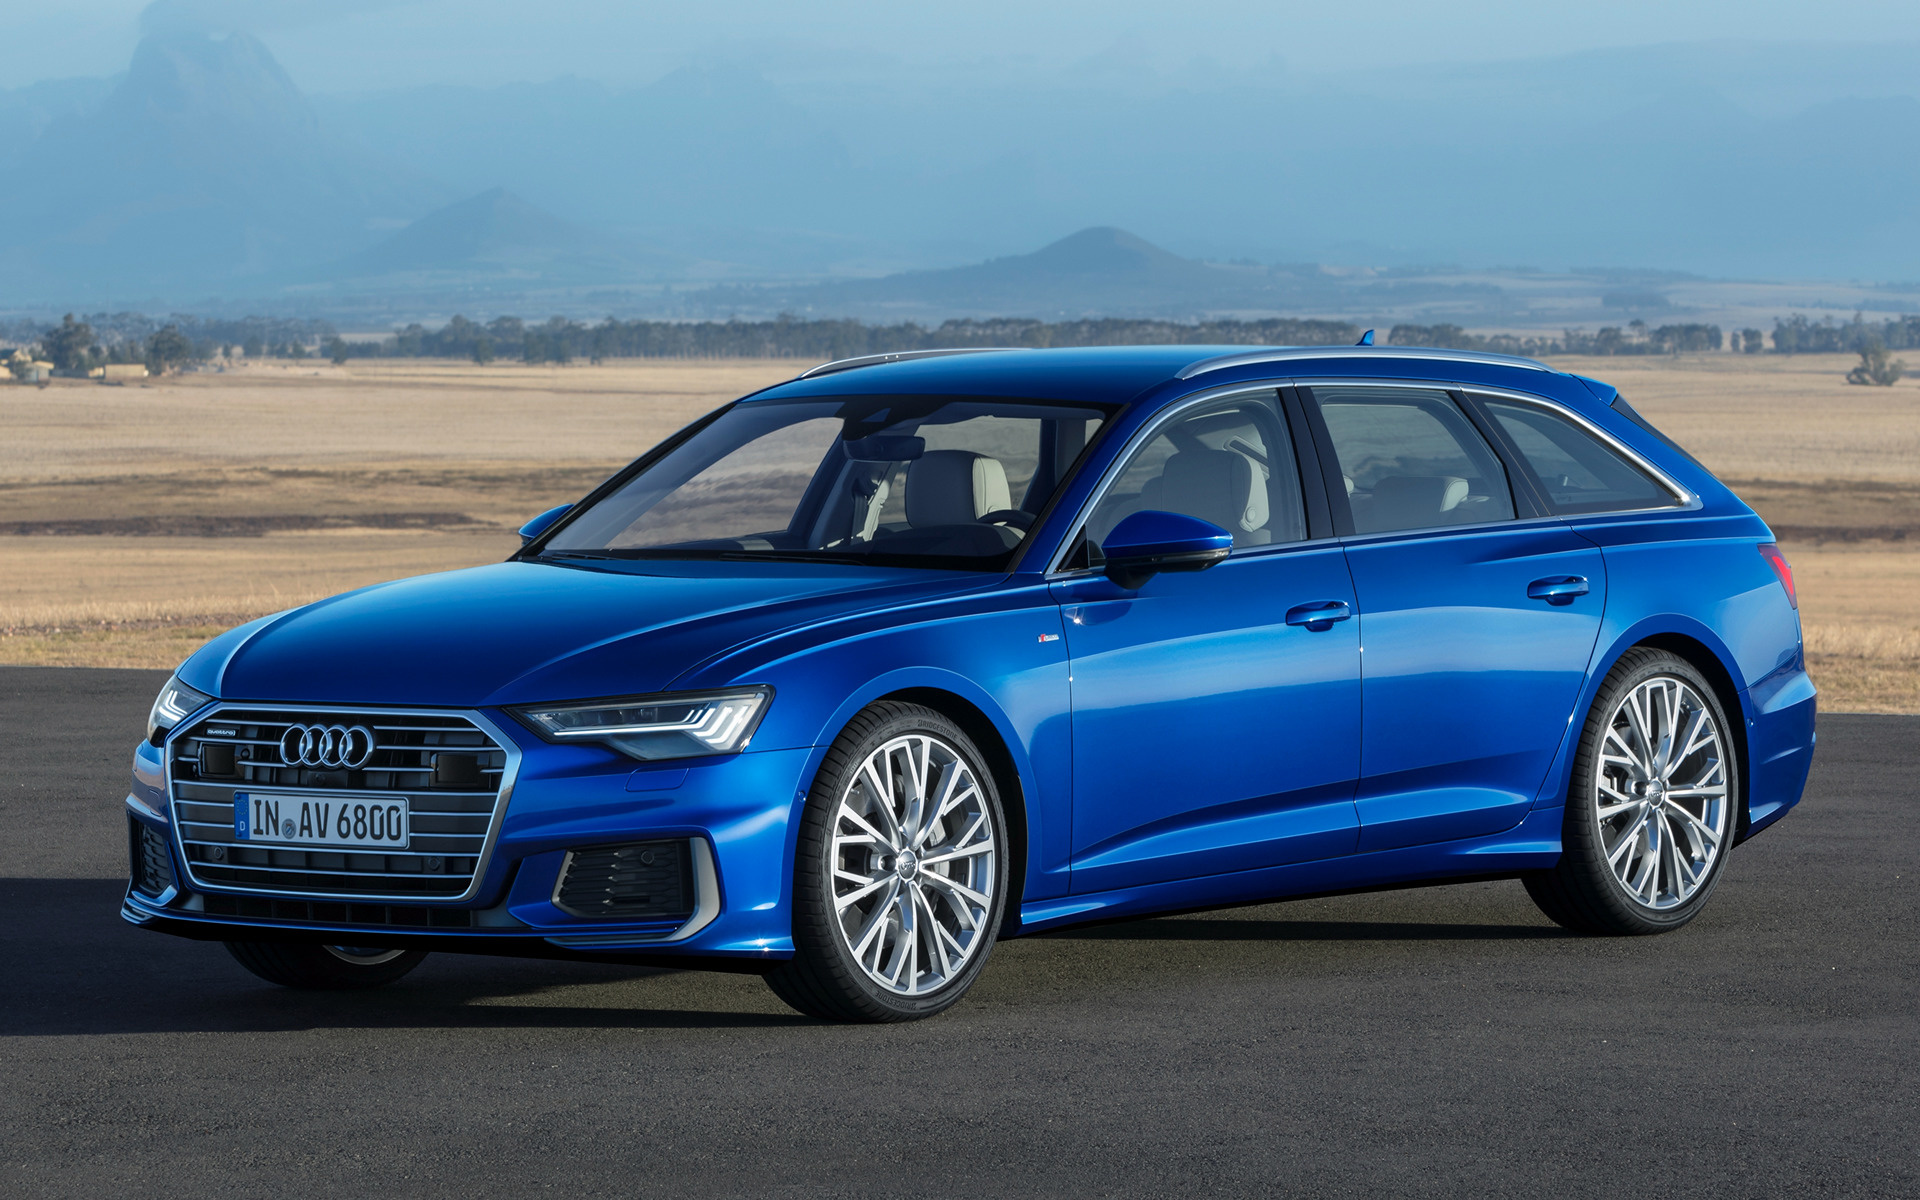 Audi A6 Wallpaper Hd 2018 Audi A6 Avant S Line Wallpapers And Hd Images Car